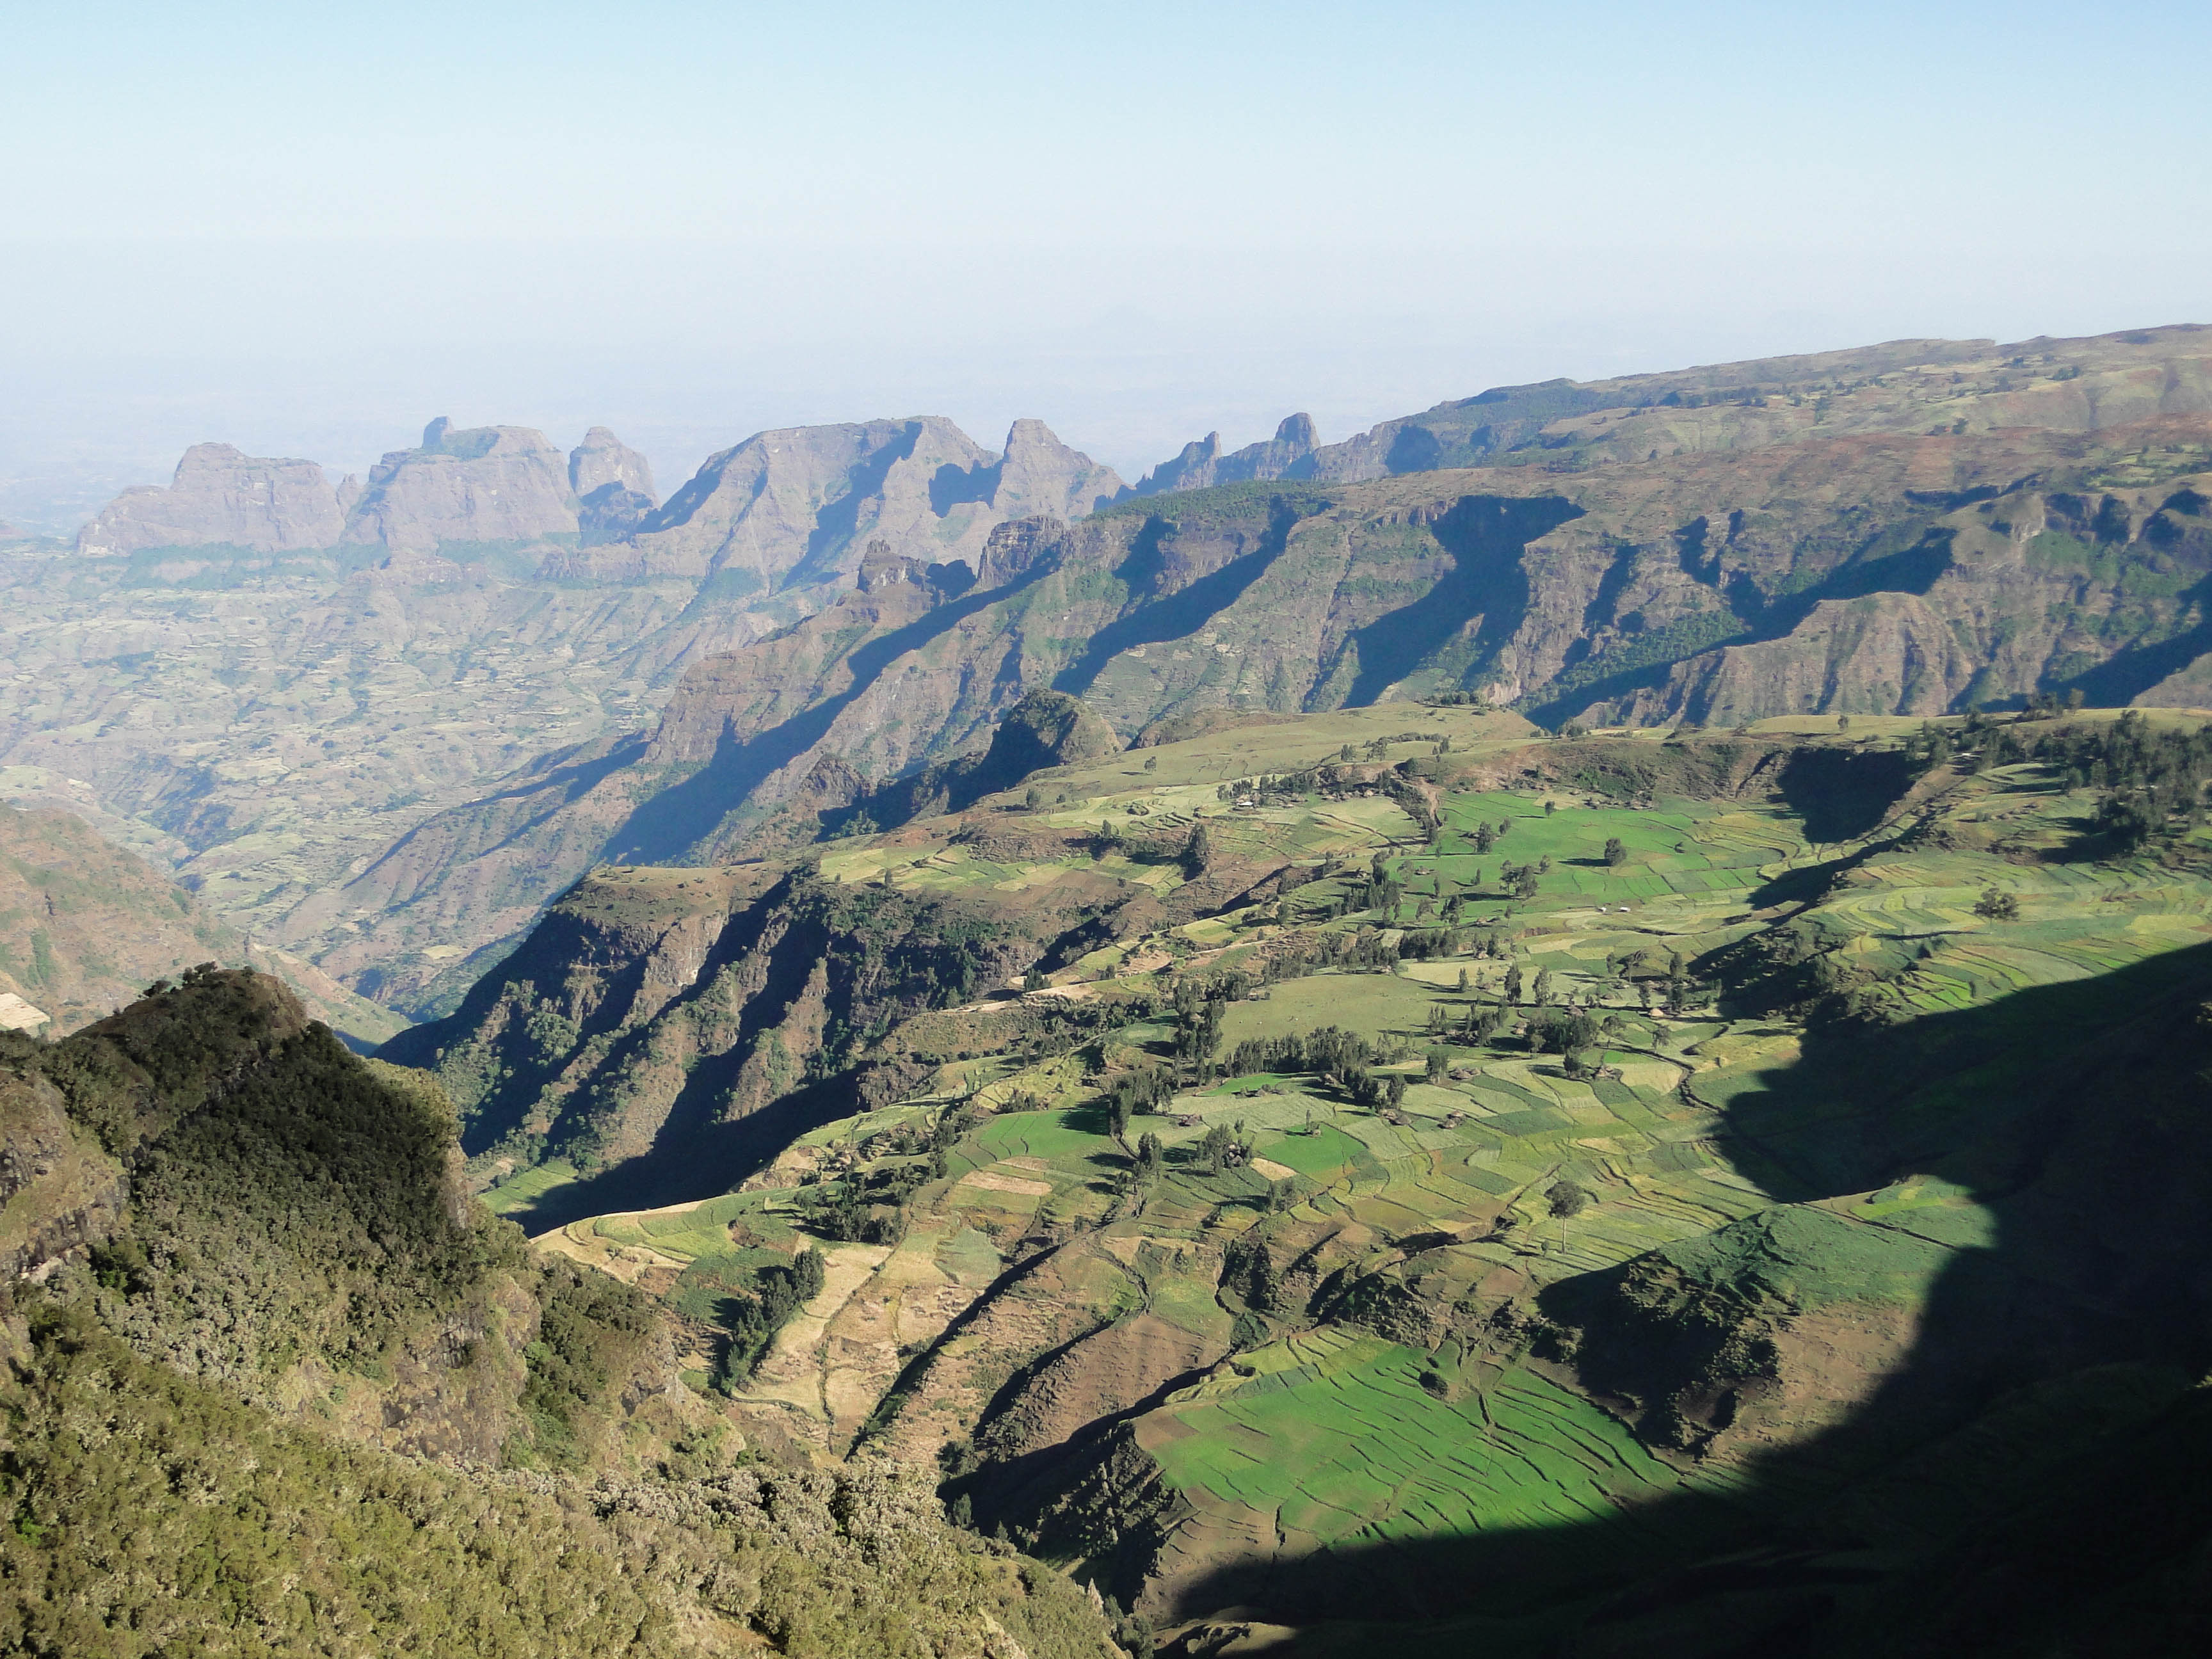 File:Simien Mountains National Park 13.jpg